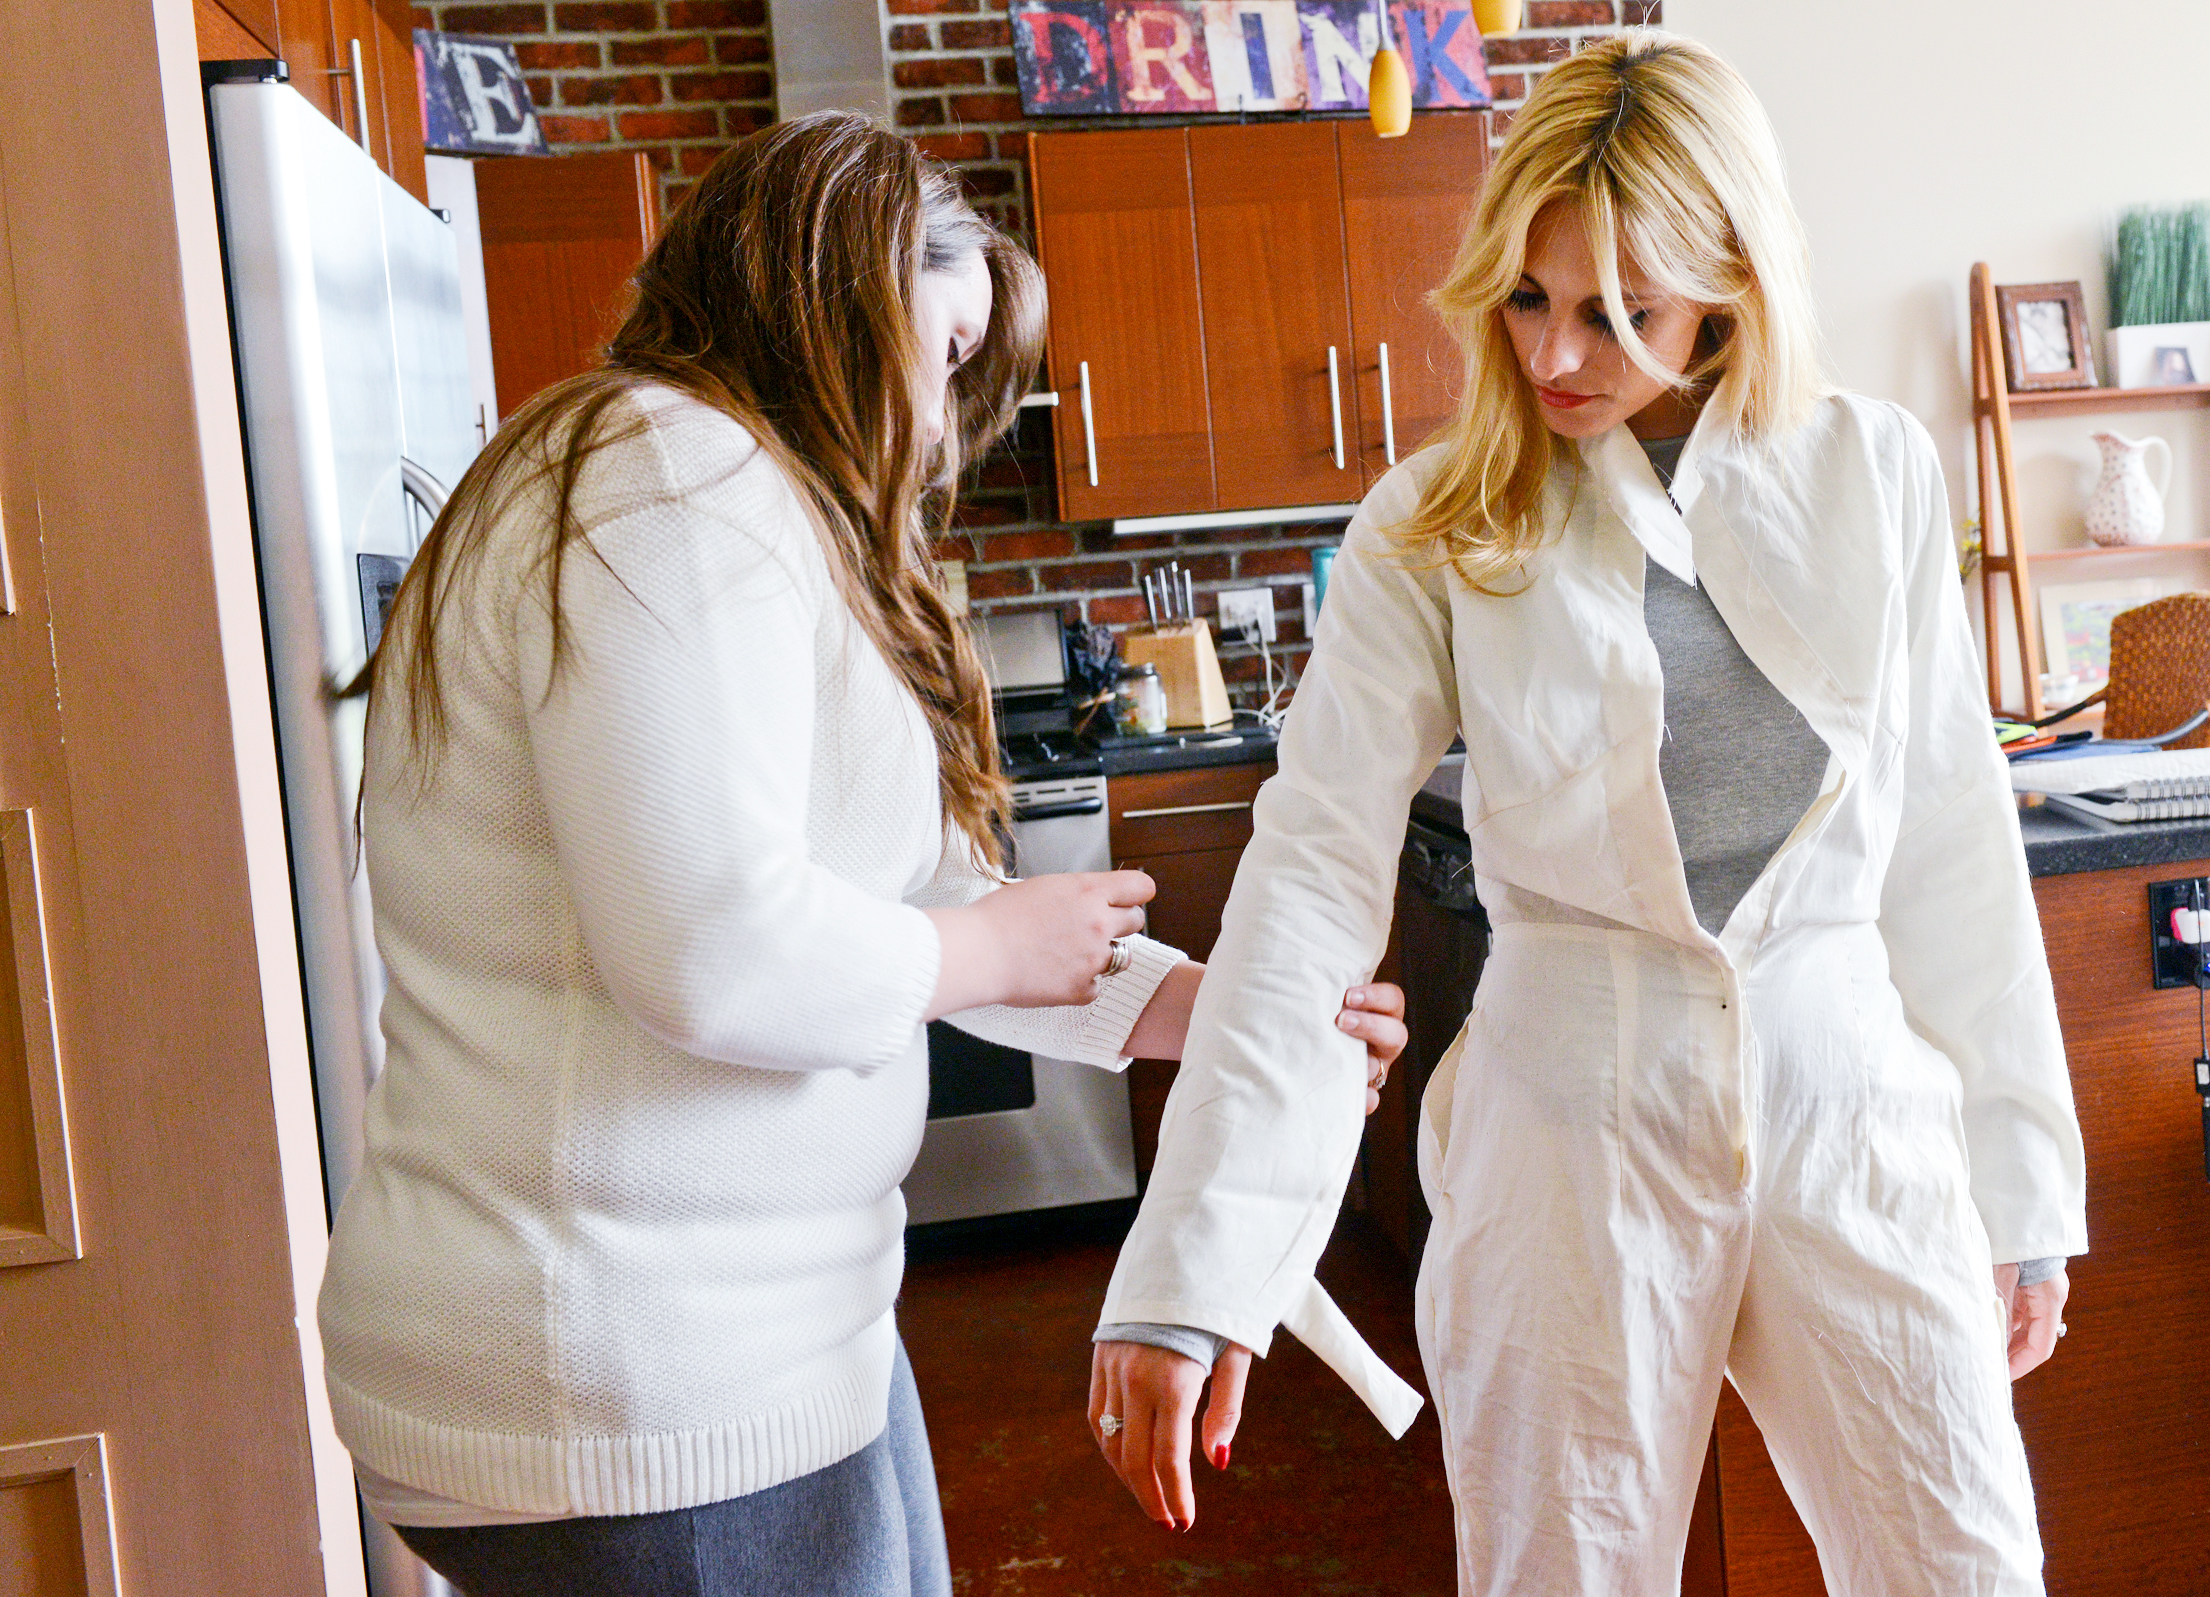 20140605rldFireWithin02-1 Designer Christina Knieriem tailors a prototype for fire resistant coverall made specifically to fit women.